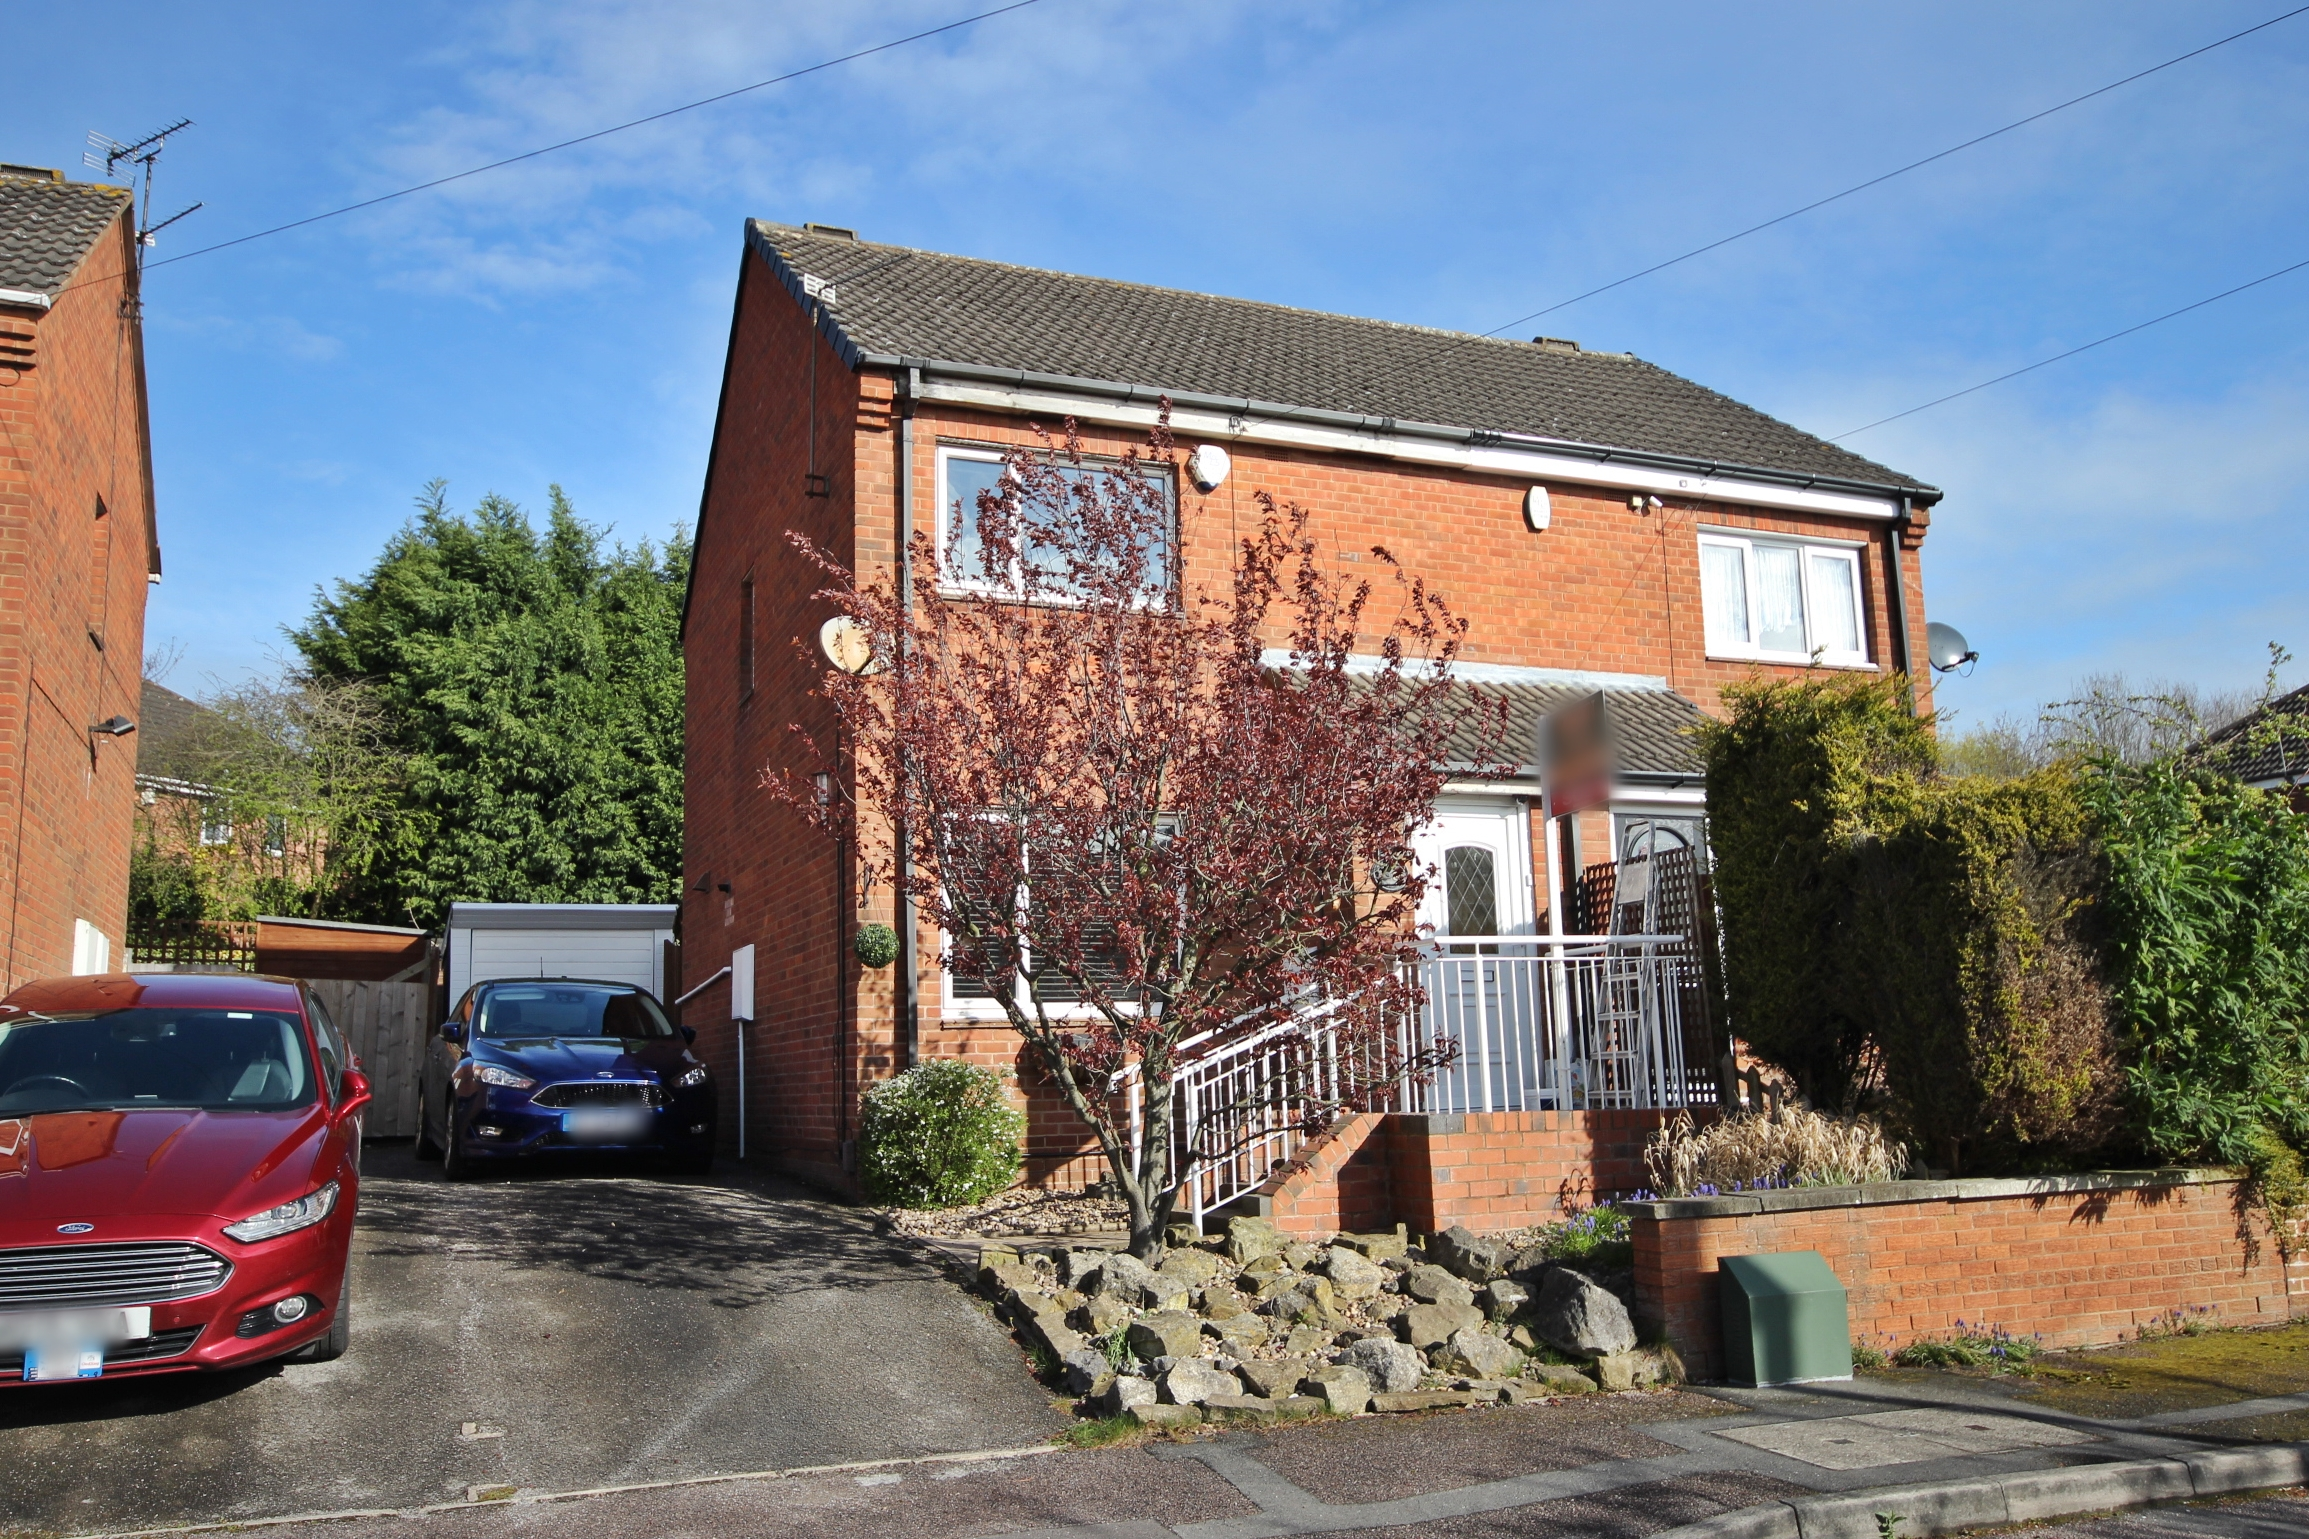 IT'S GONE! £550pcm Larchdale Close, Broadmeadows, Derbys, DE55 3NZ - Gorgeous two bed family home currently being redecorated and renovated! Driveway and garage parking, all in a lovely peaceful area. EPC rating C.